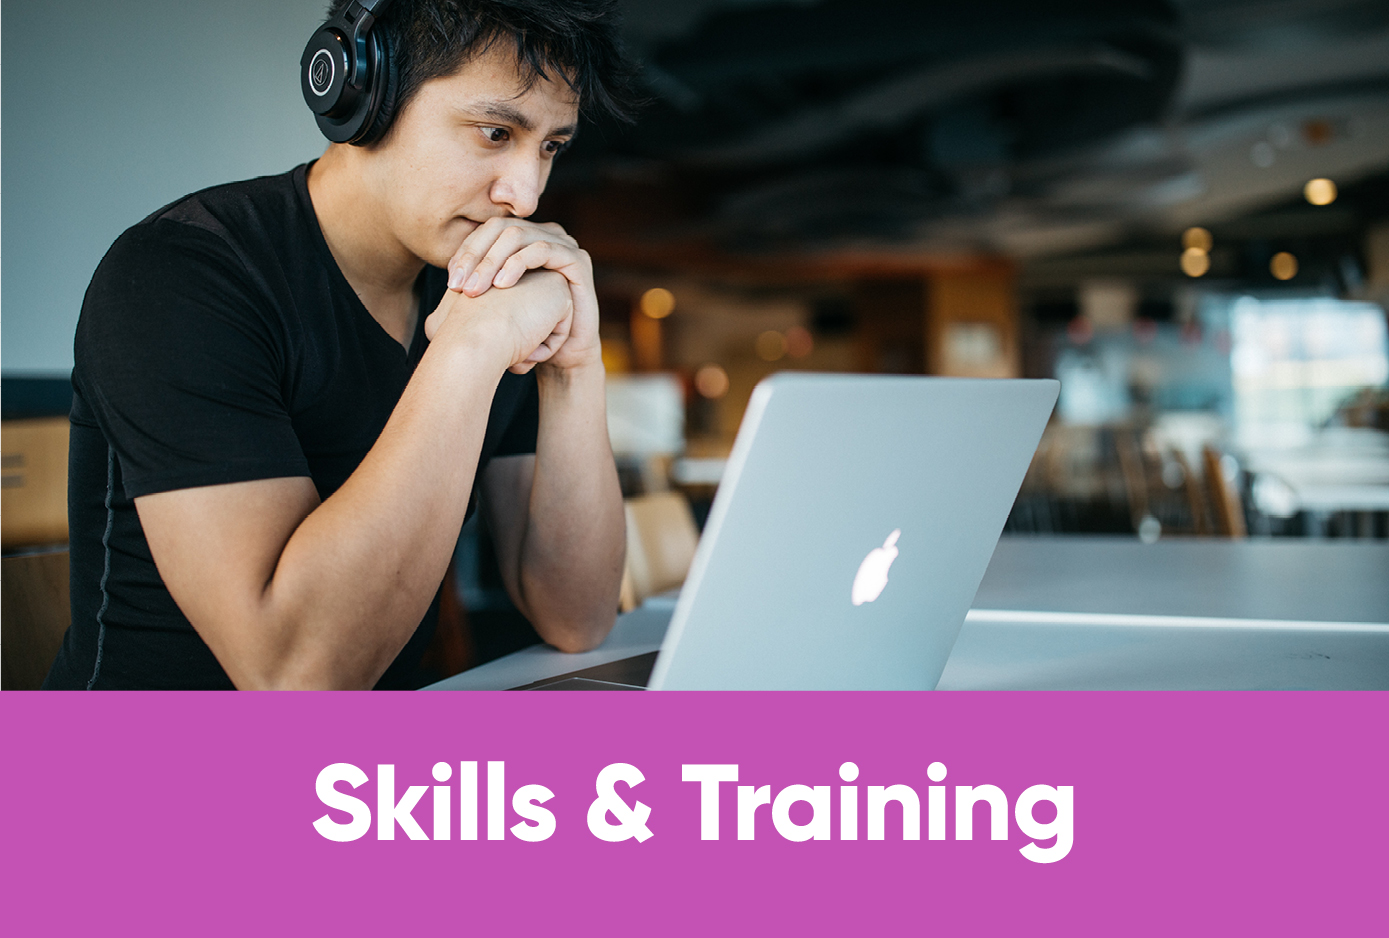 Skills and Training